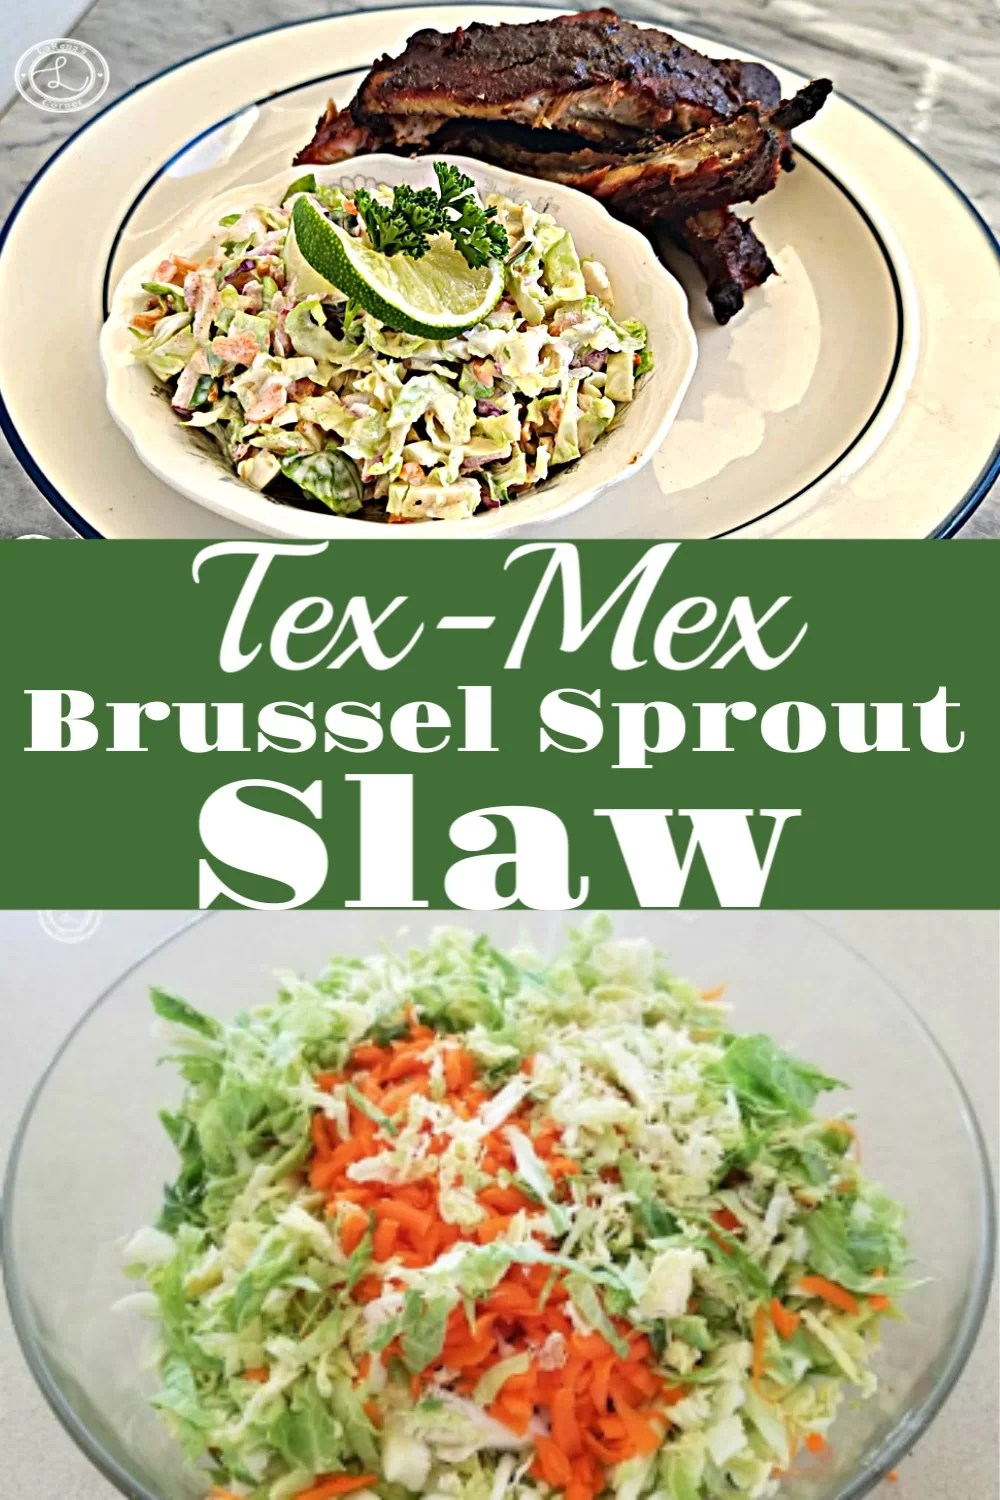 2 pictures of Tex-Mex Brussel Sprout Slaw. One of the slaw about to be mixed and one of a bowl of slaw and baby back ribs.